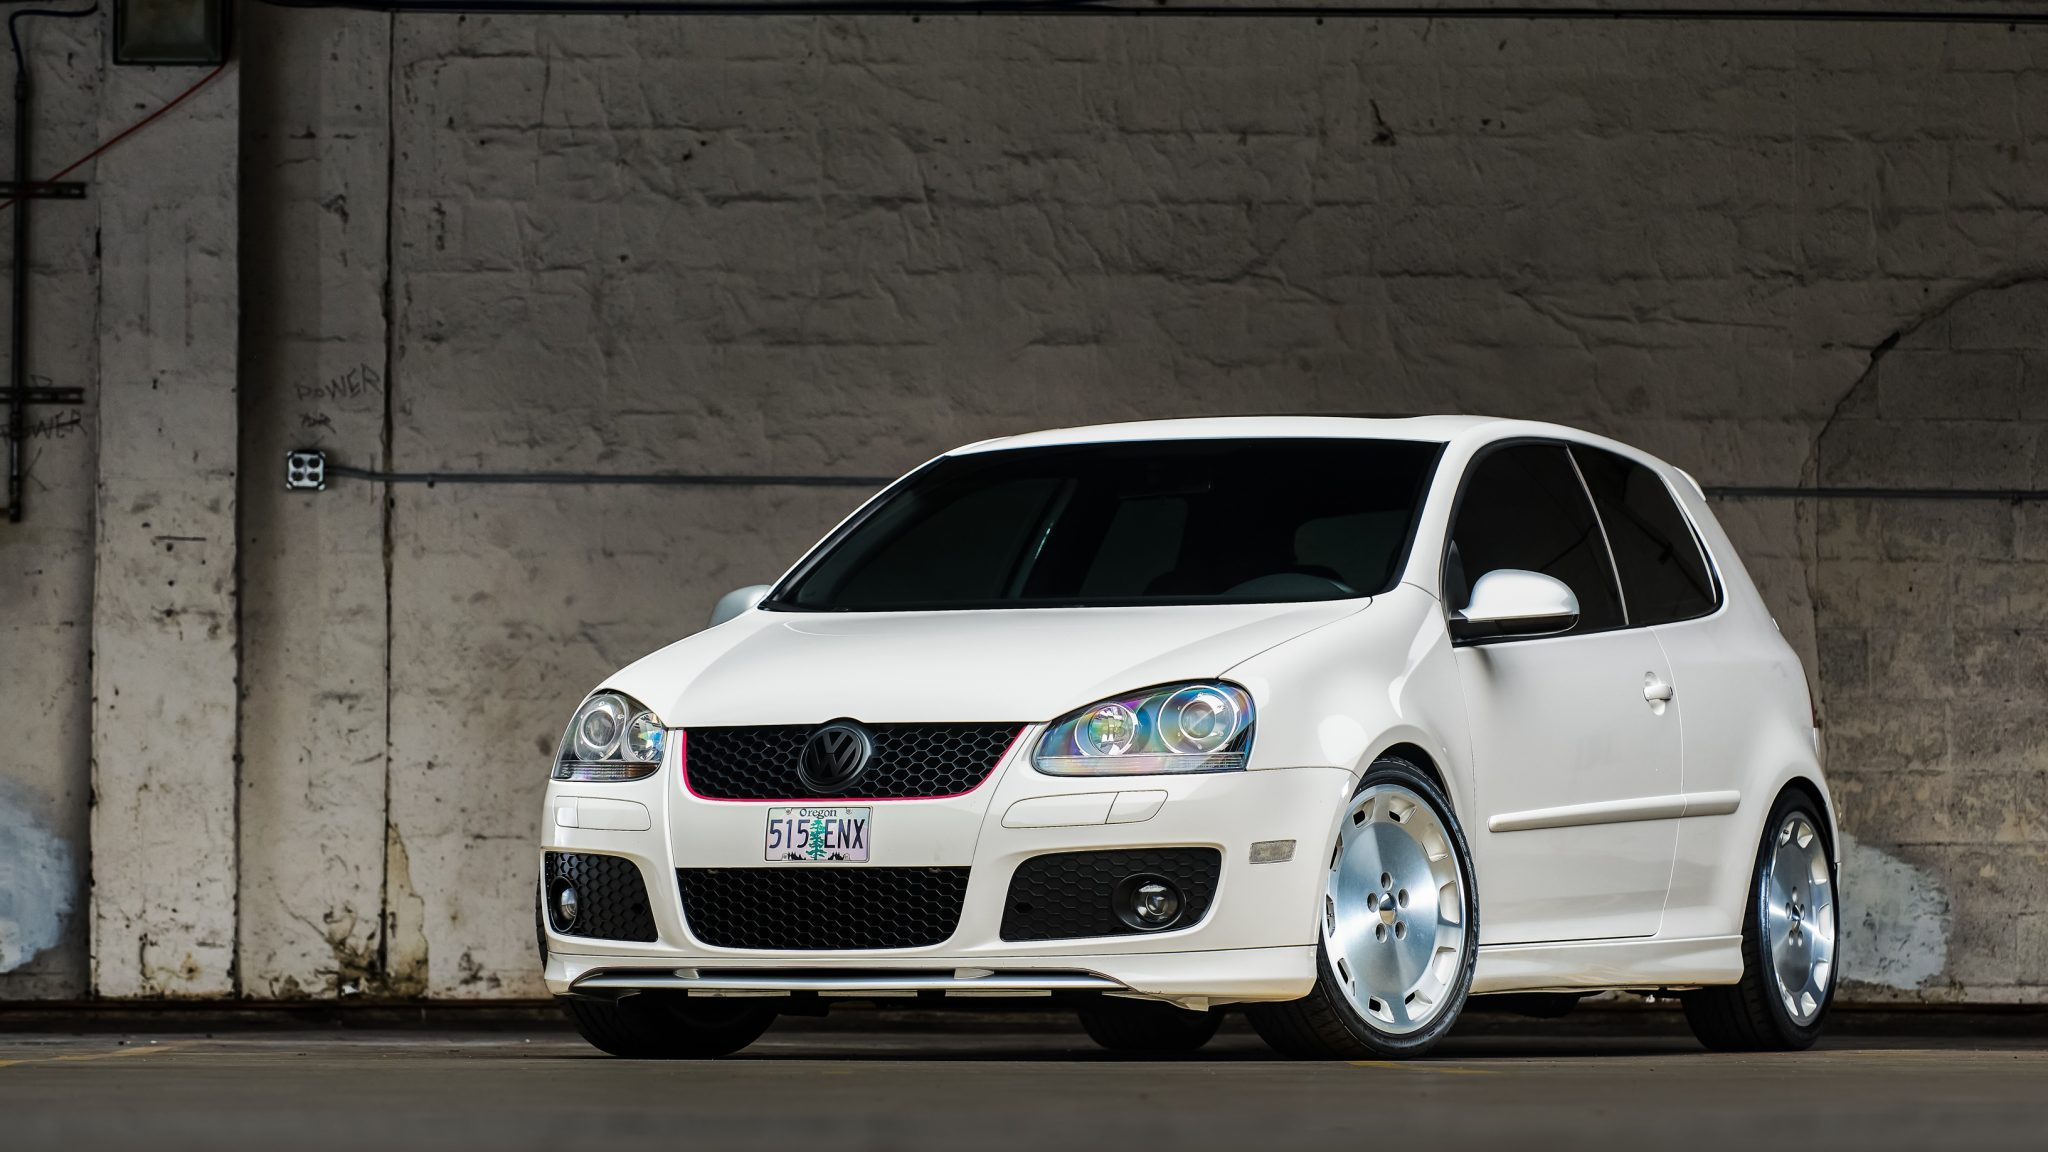 159413937657bfc5VW-GTI-for-Sale-A-GC.com-2-scaled